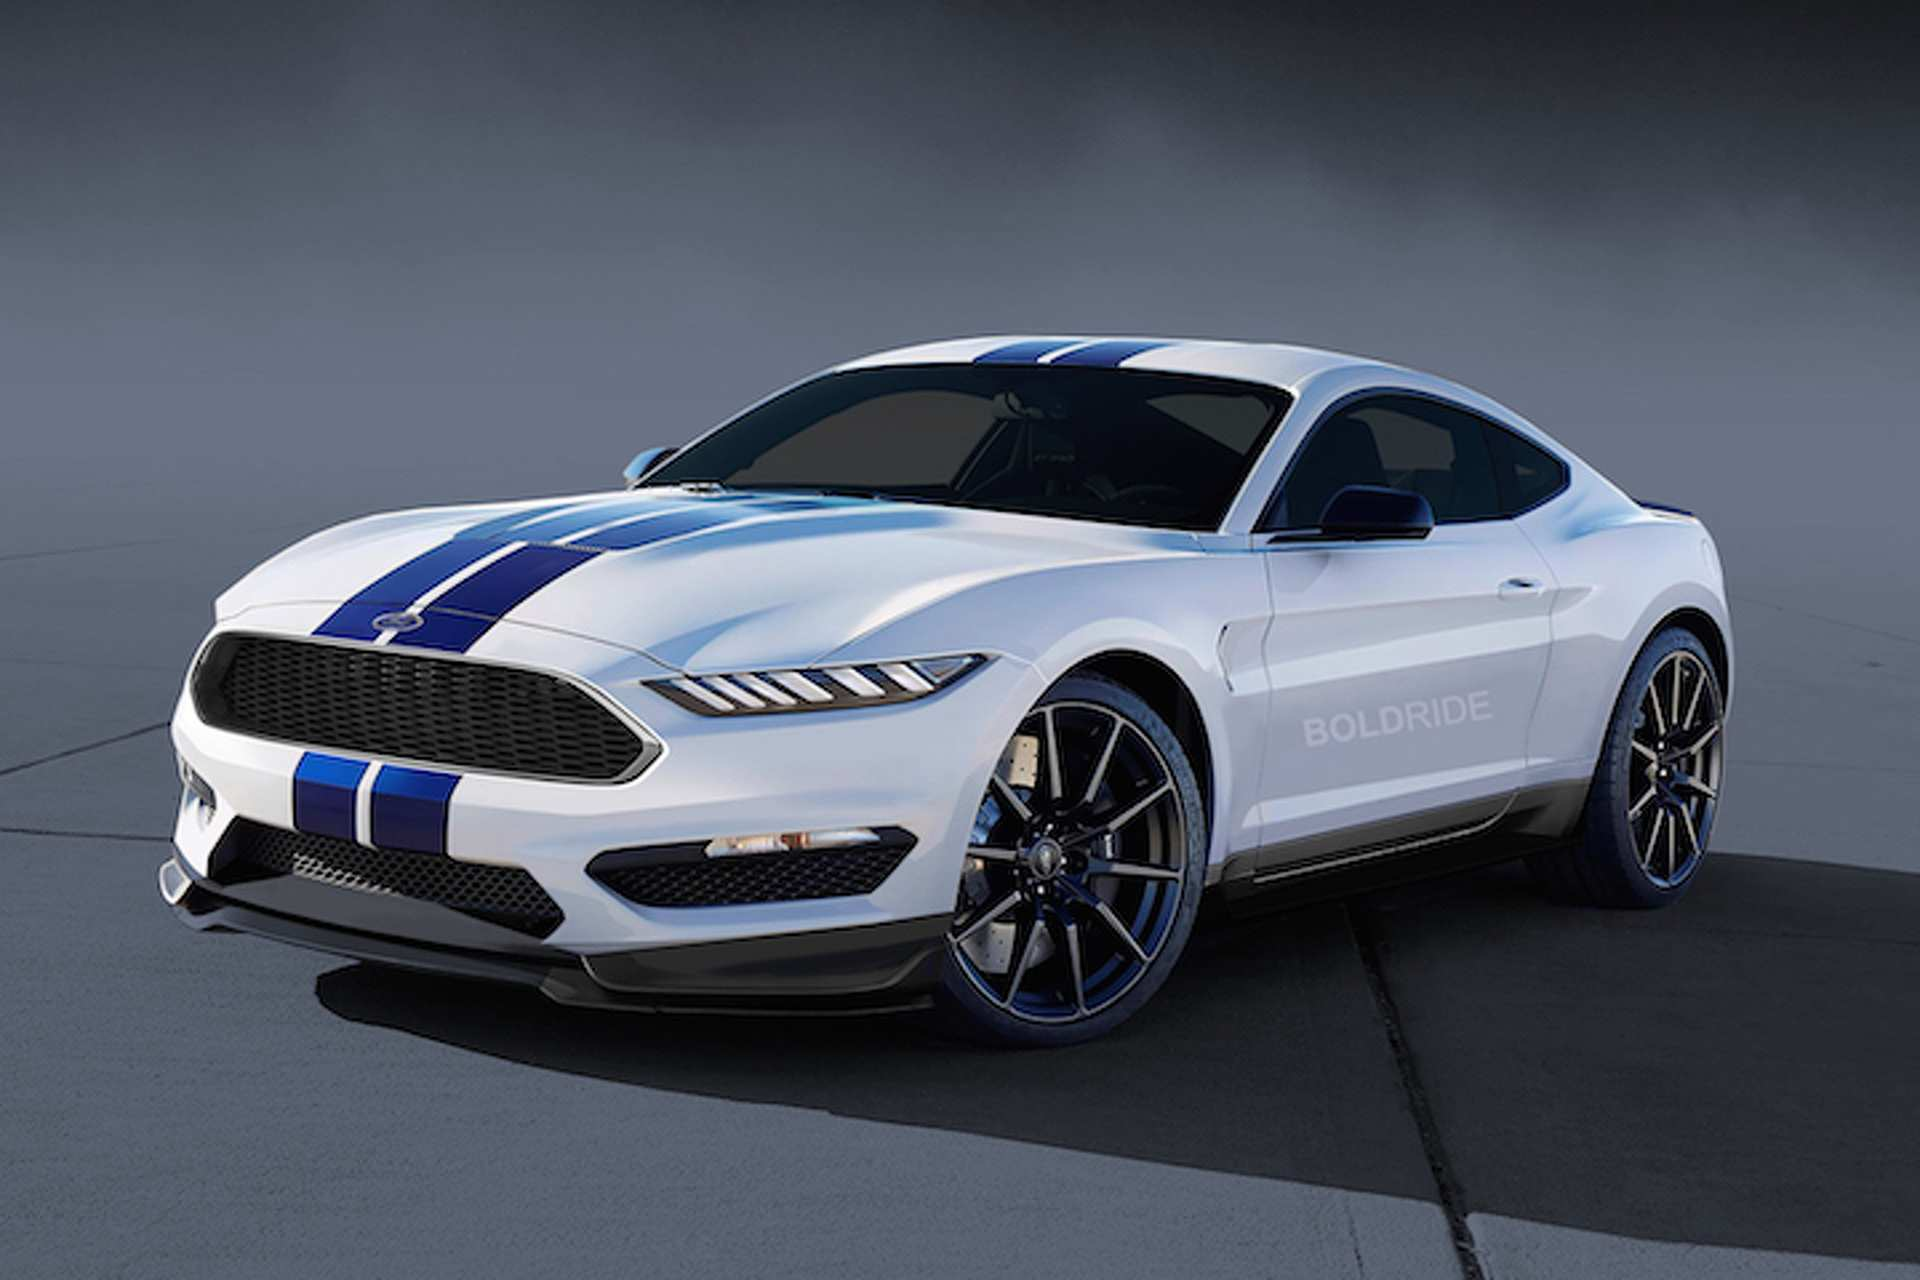 59 Concept of 2020 Ford Mustang Gt Specs for 2020 Ford Mustang Gt